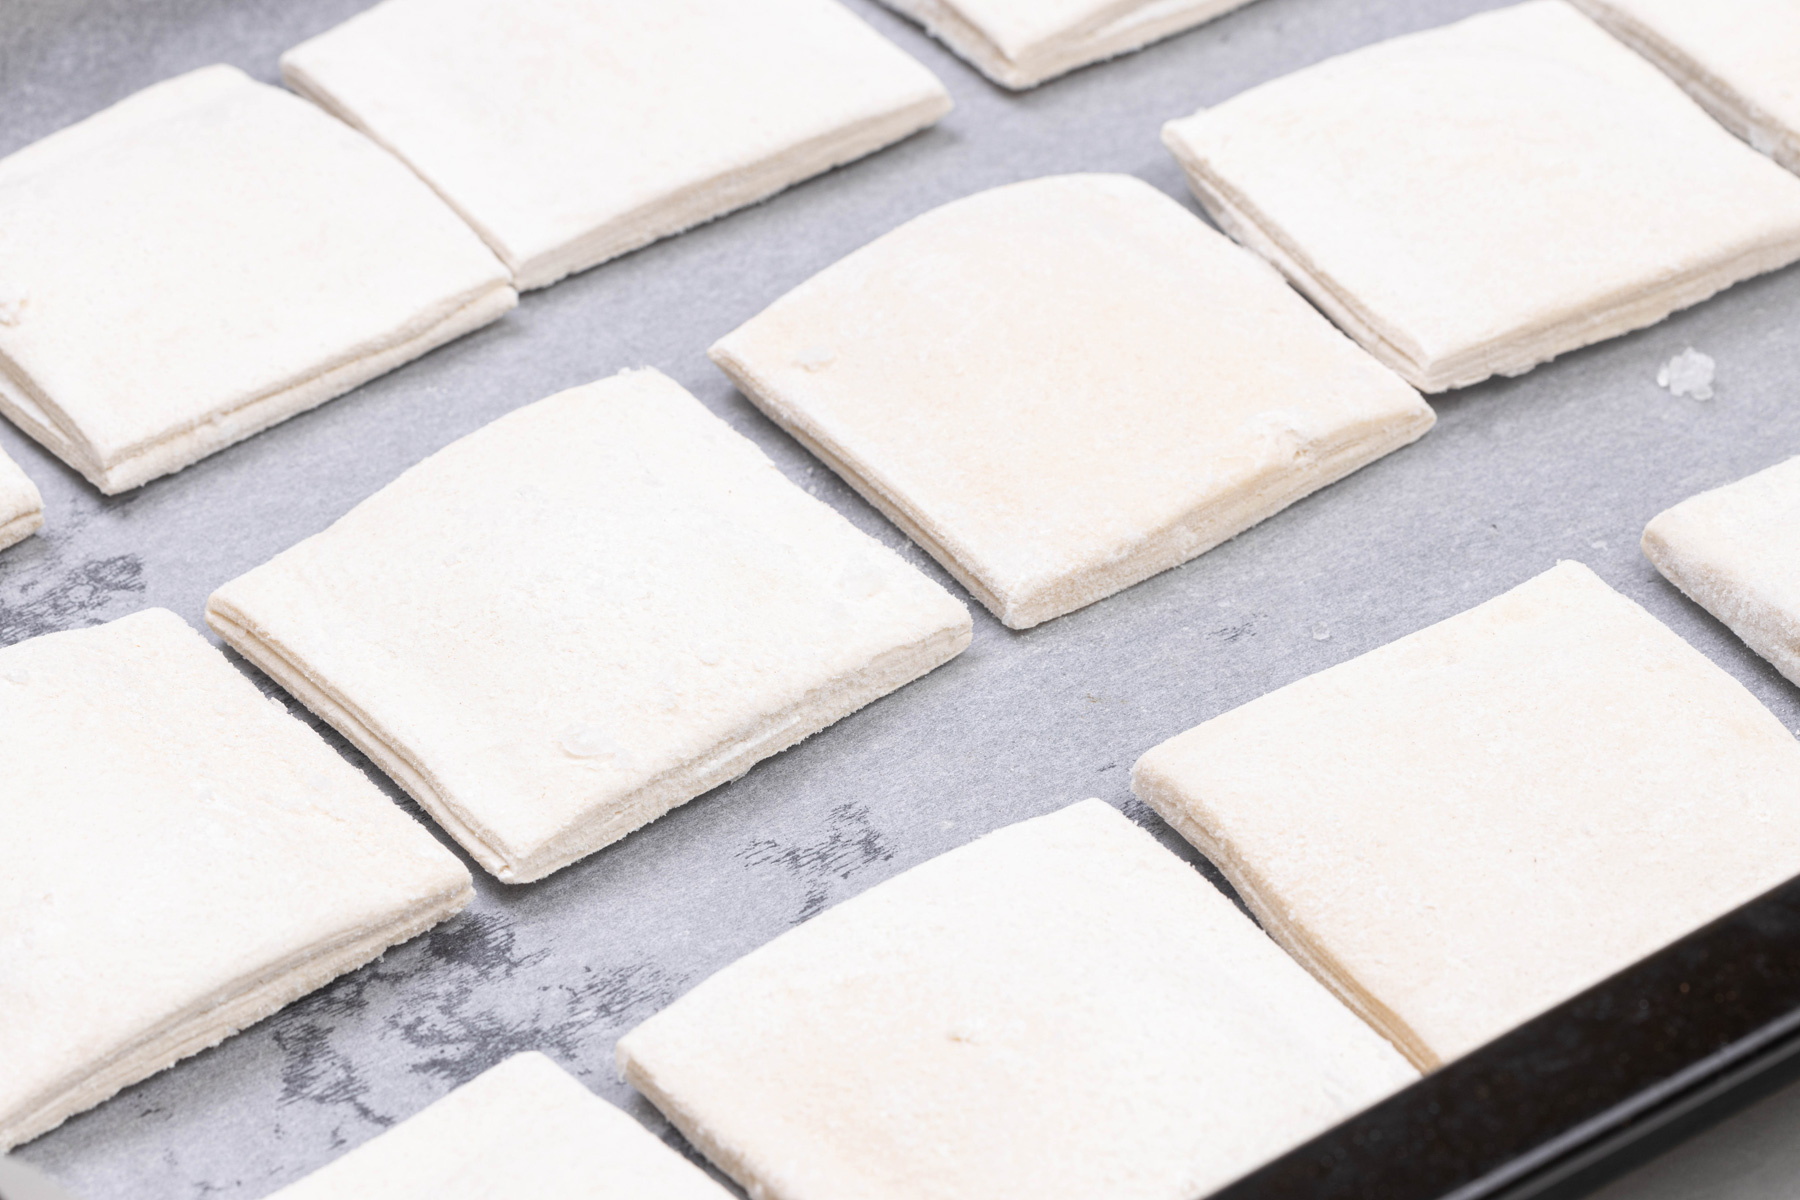 Pastry squares